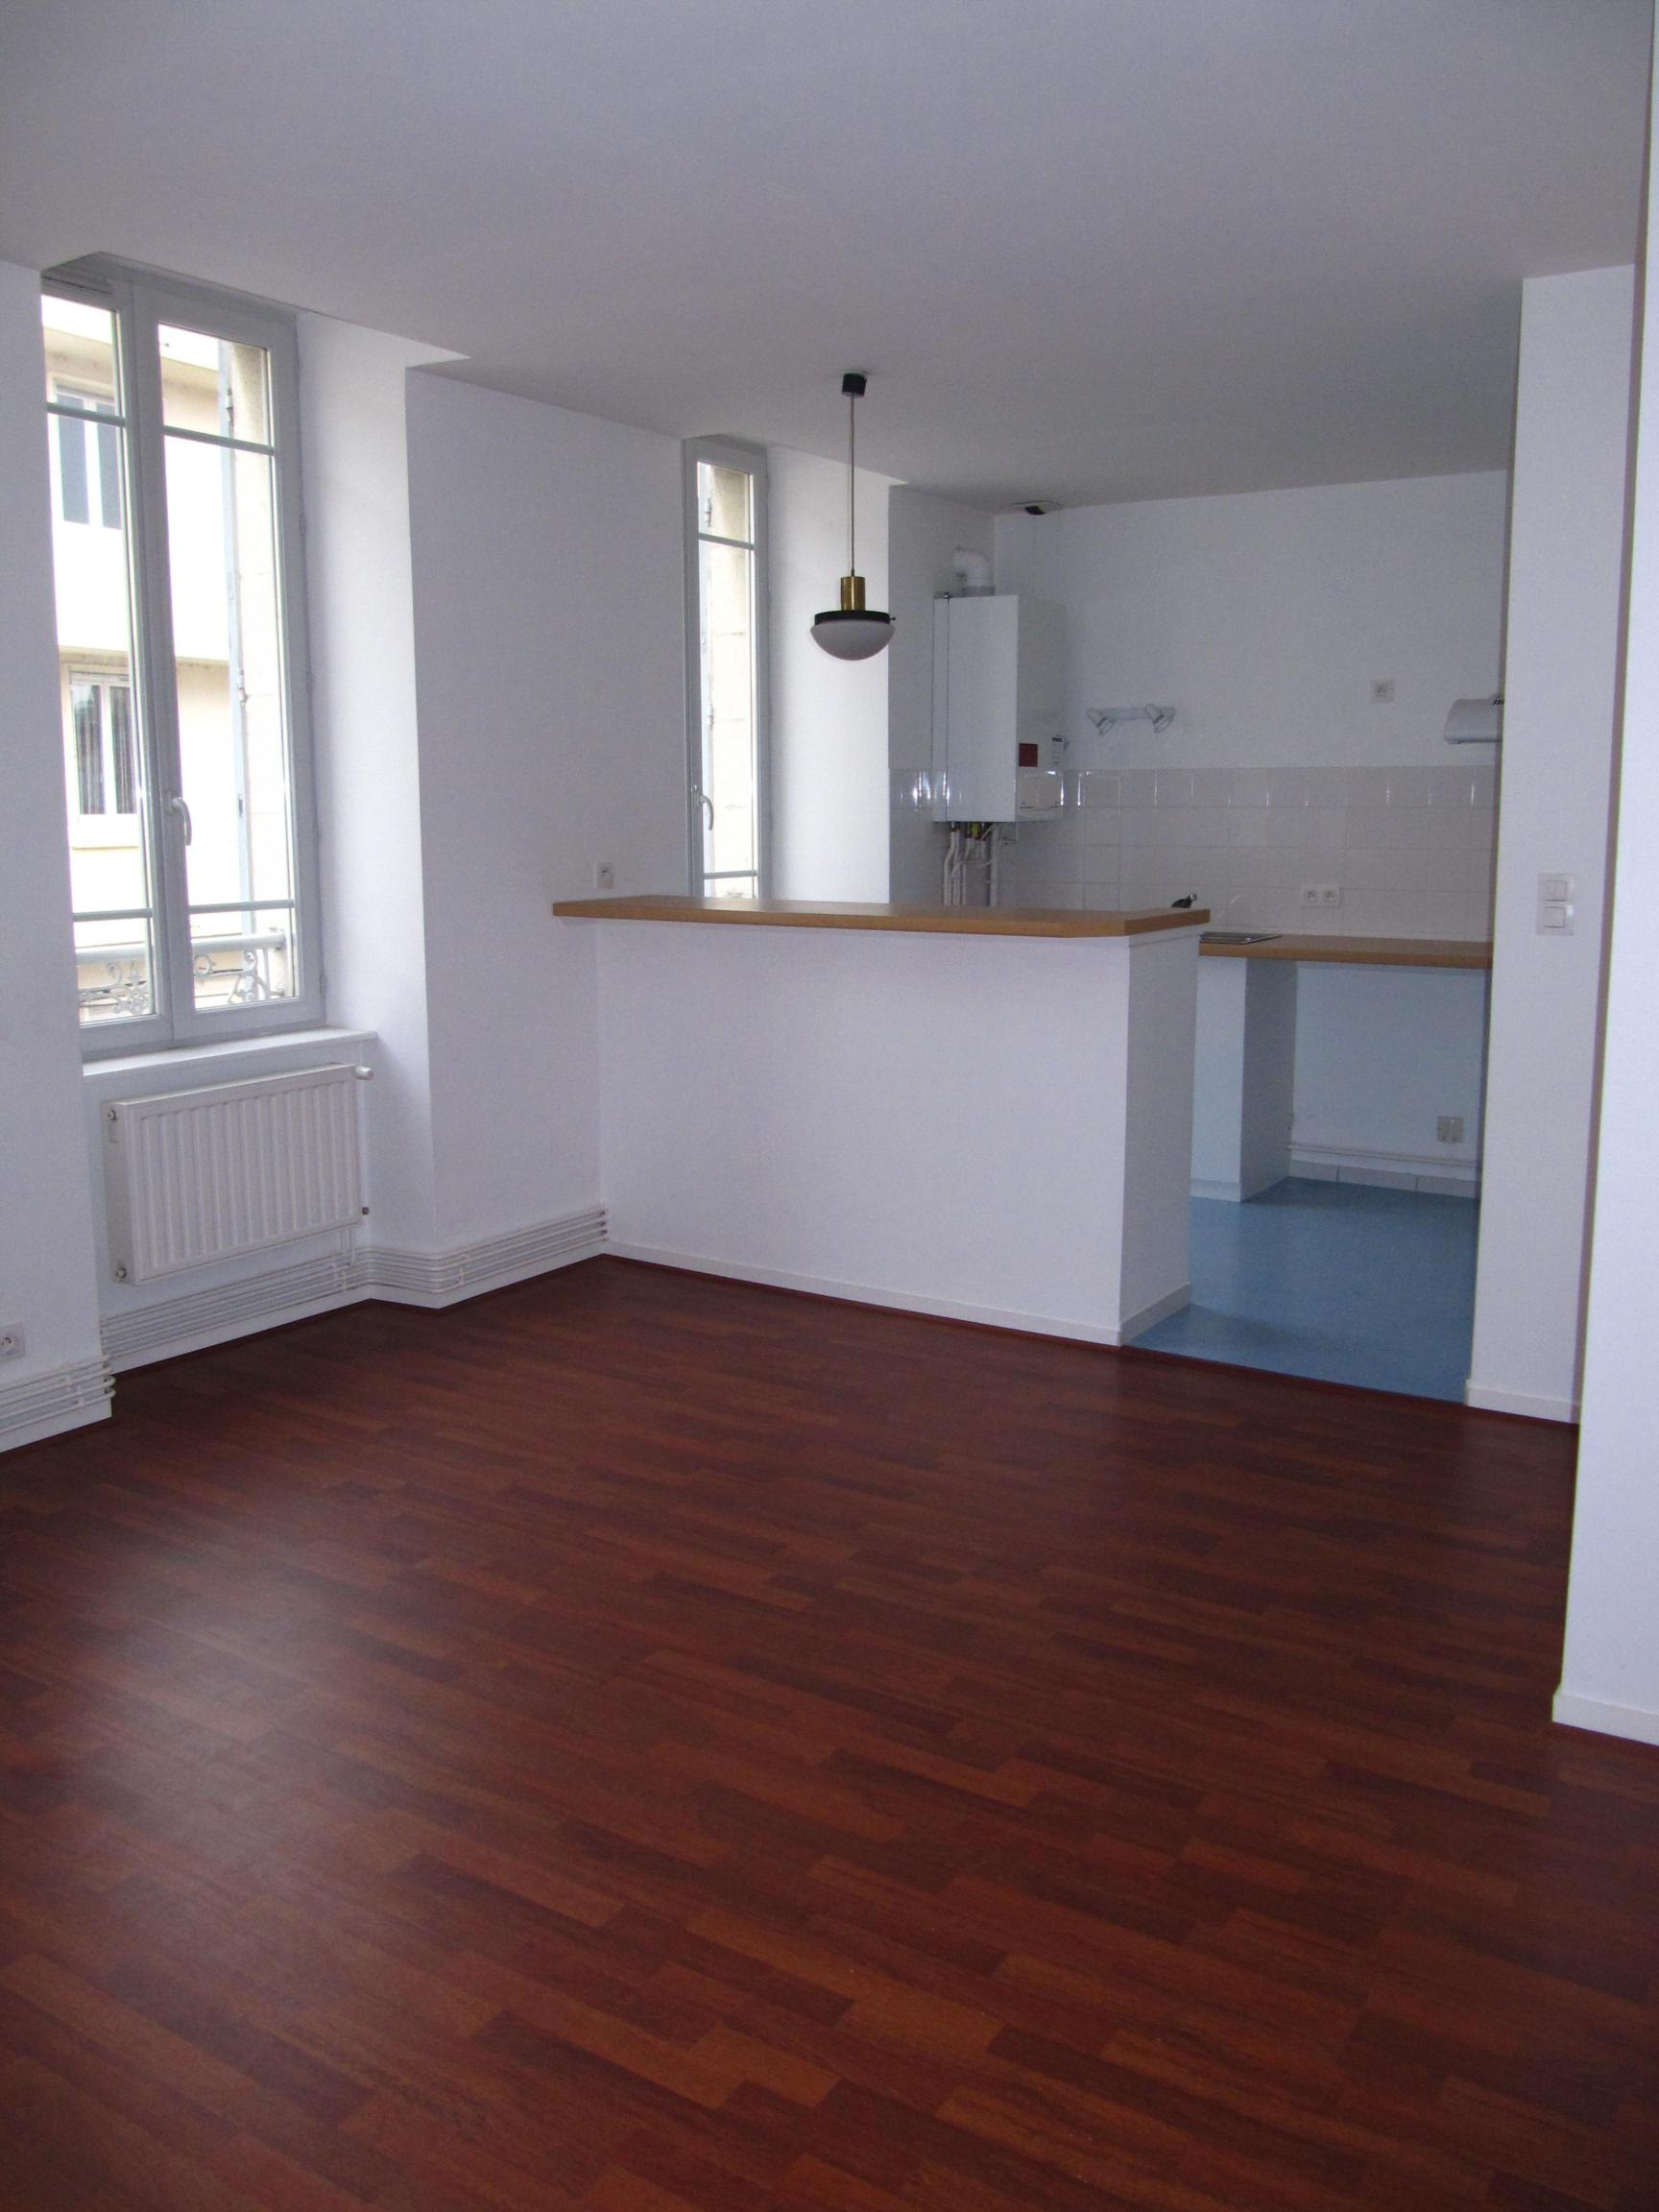 LOCATION MONTLUCON APPARTEMENT F1